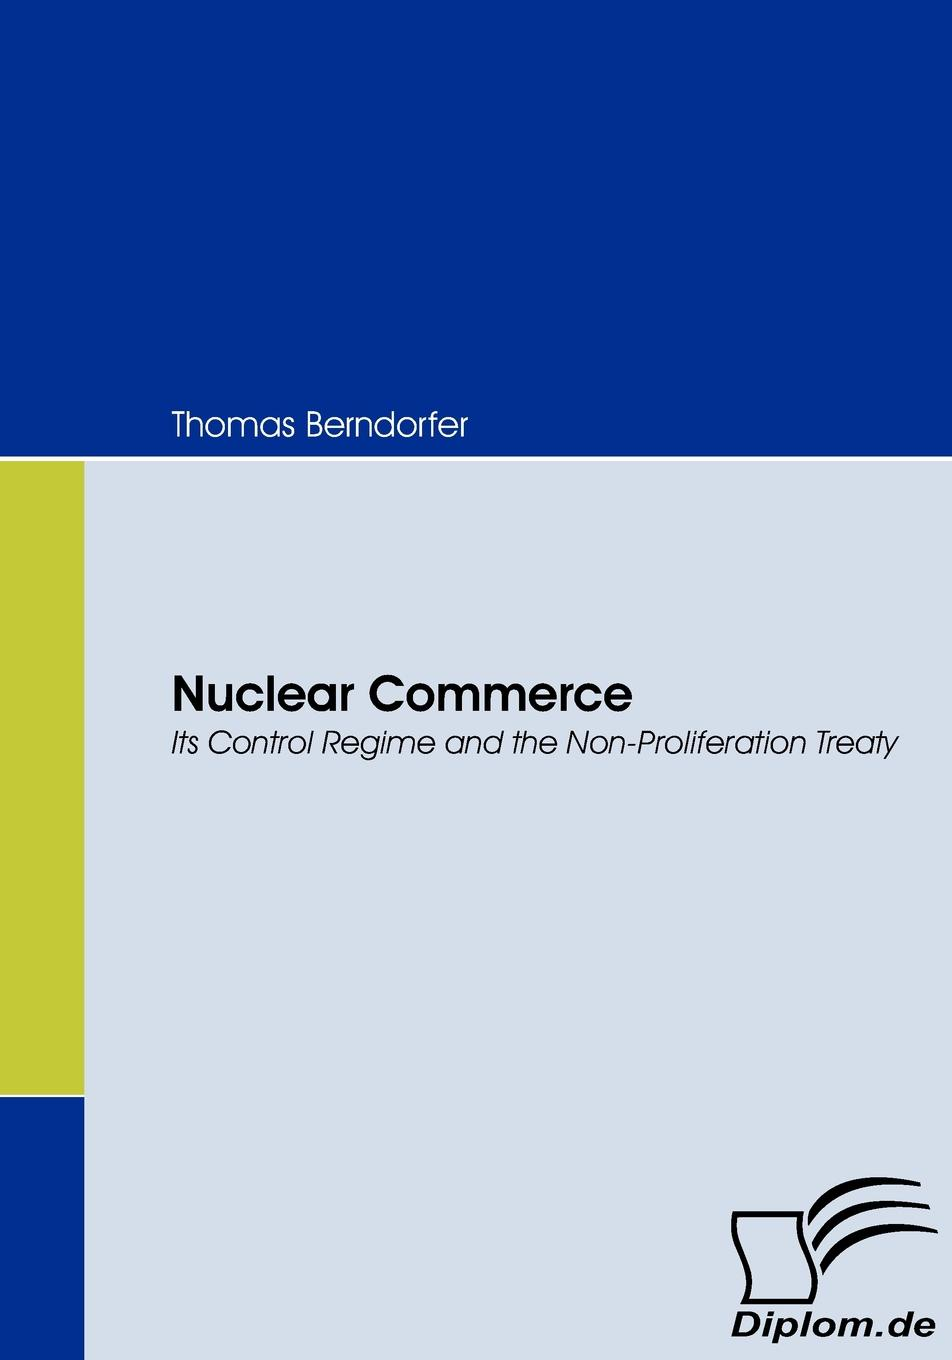 Thomas Berndorfer Nuclear Commerce denis stein marion preuß nina höhne economical implications of shutdowns of nuclear power in germany